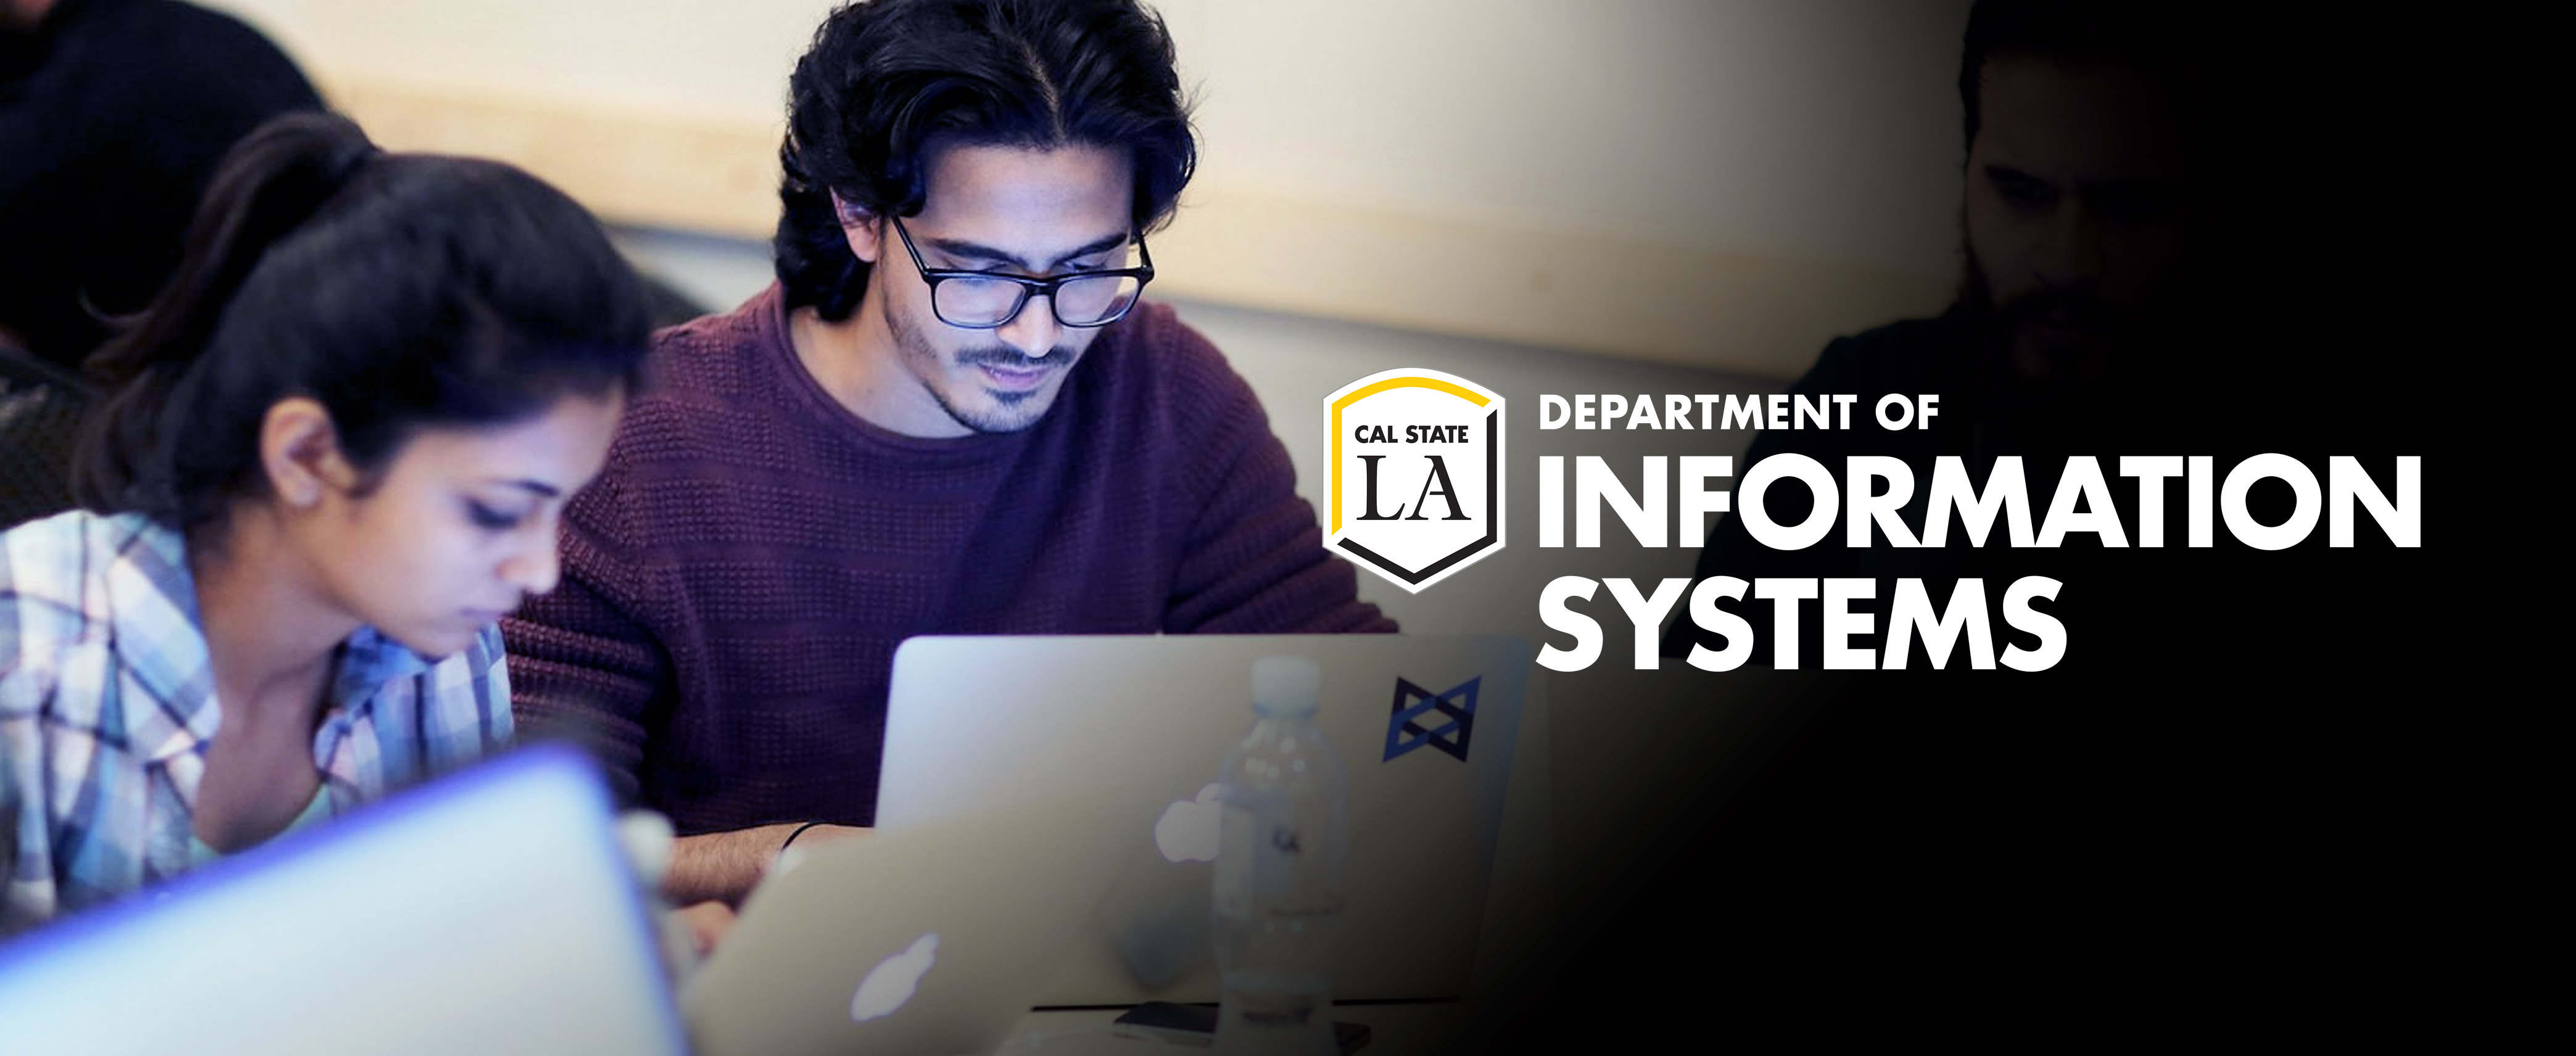 Cal State LA College of Business & Economics   Department of Information Systems